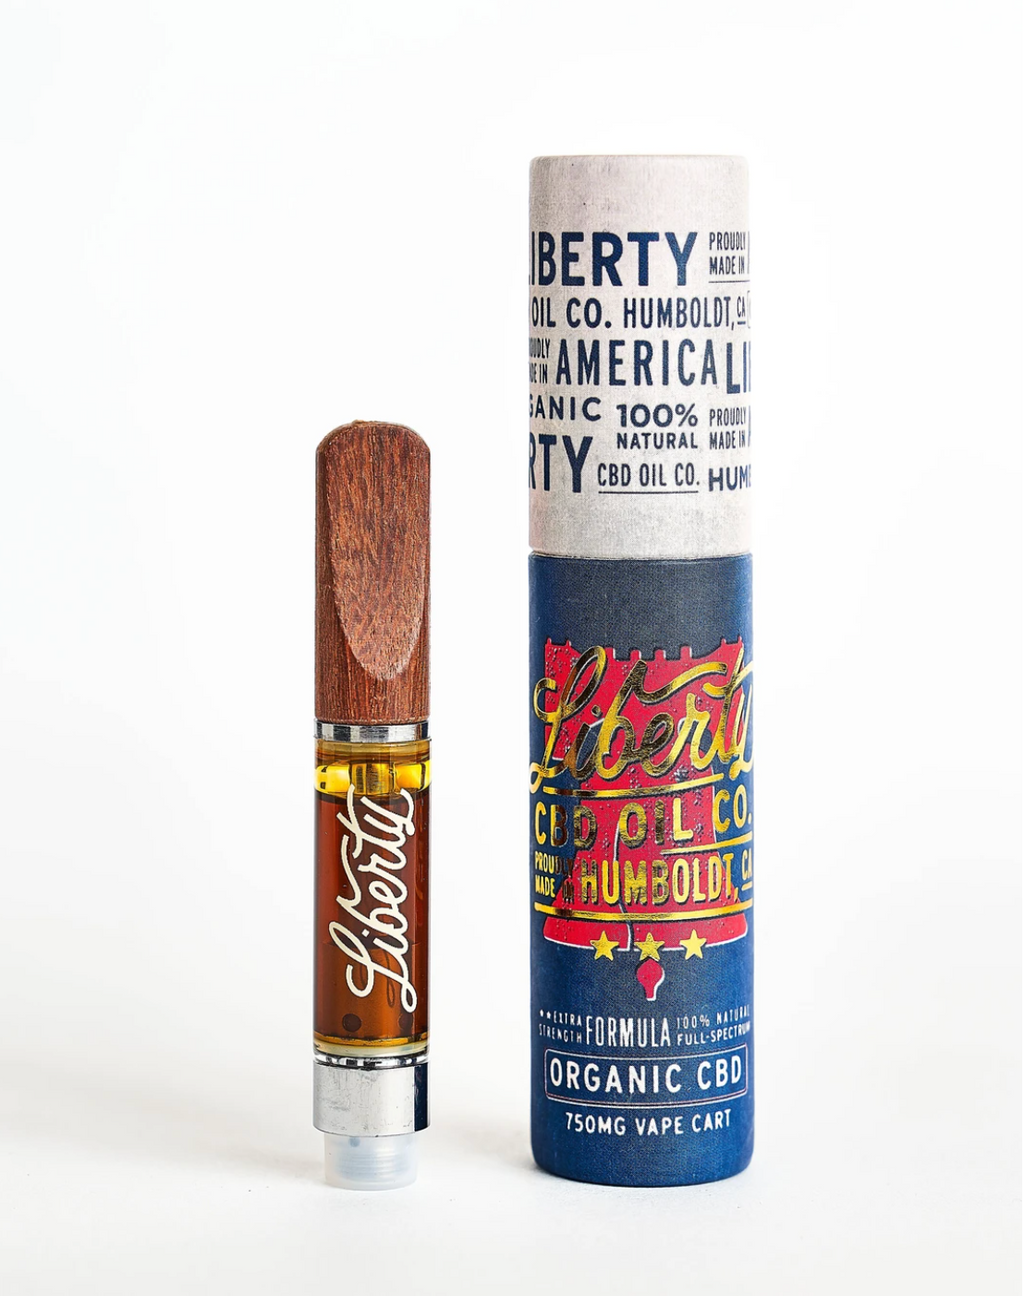 Gorilla Glue no. 4 - Liberty 750mg Full Spectrum CBD Vape Cartridge